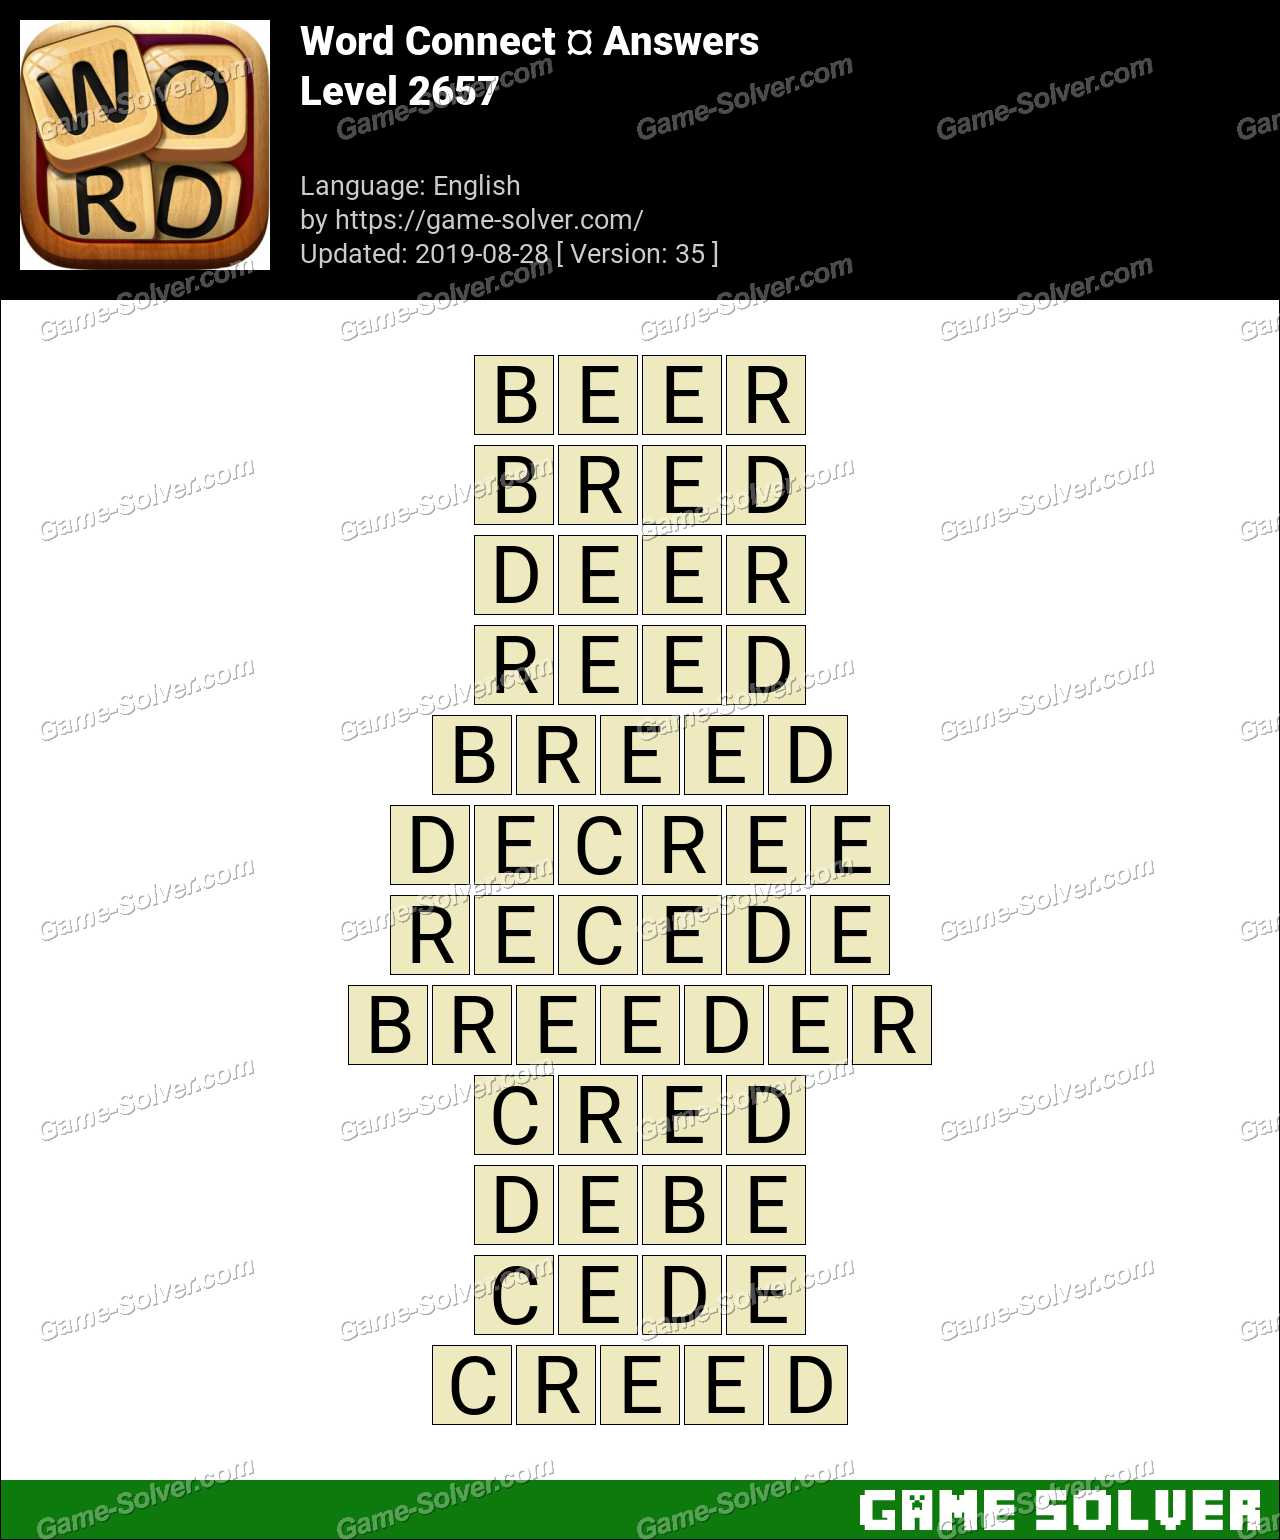 Word Connect Level 2657 Answers